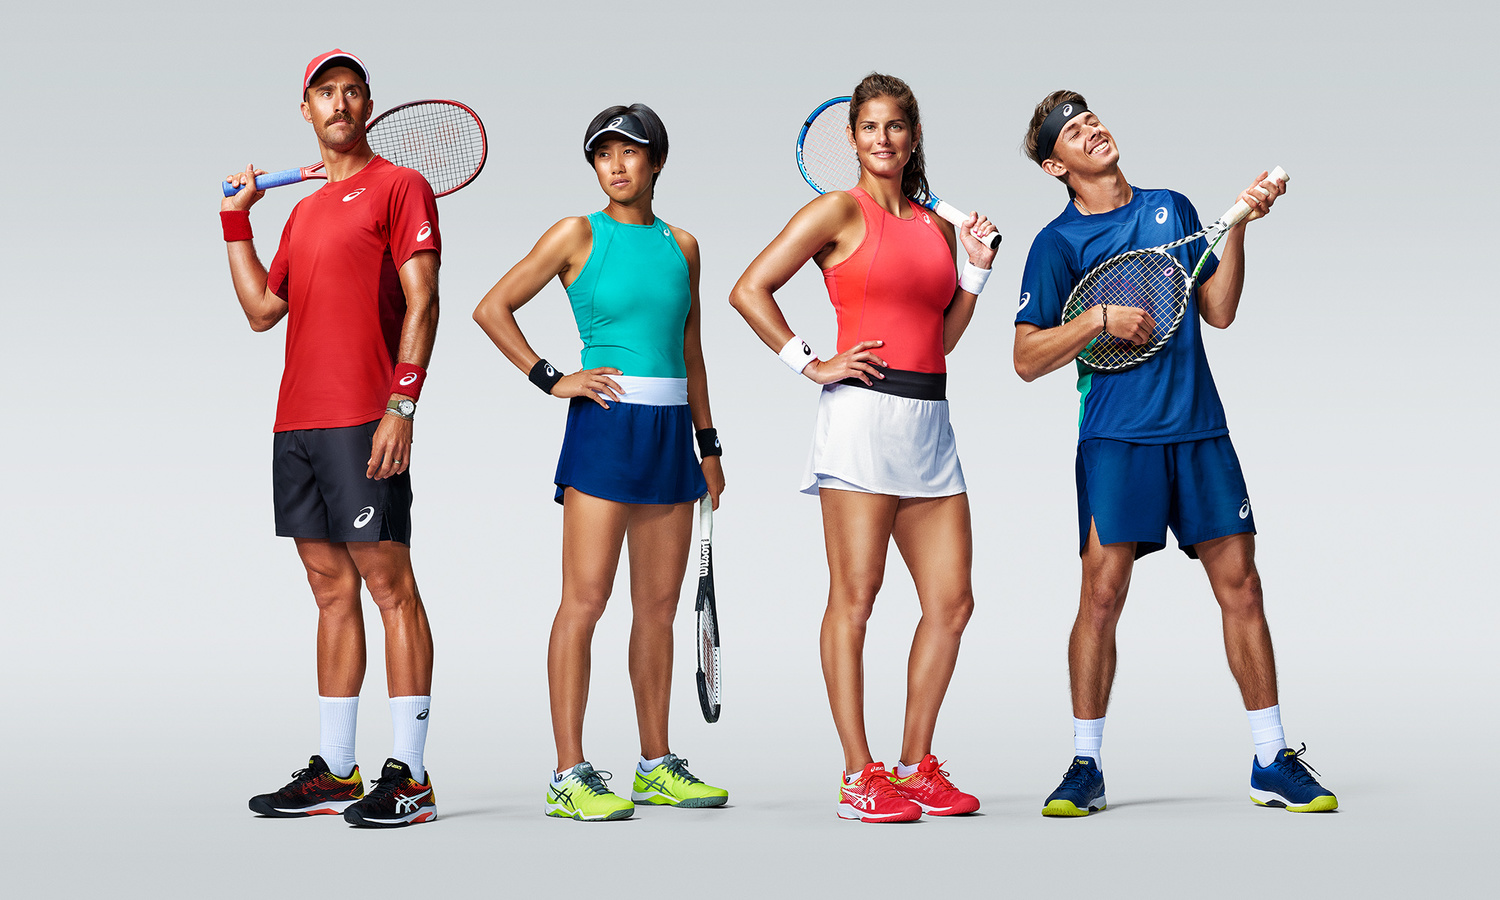 ASICS Tennis Players by Smith And Daniels